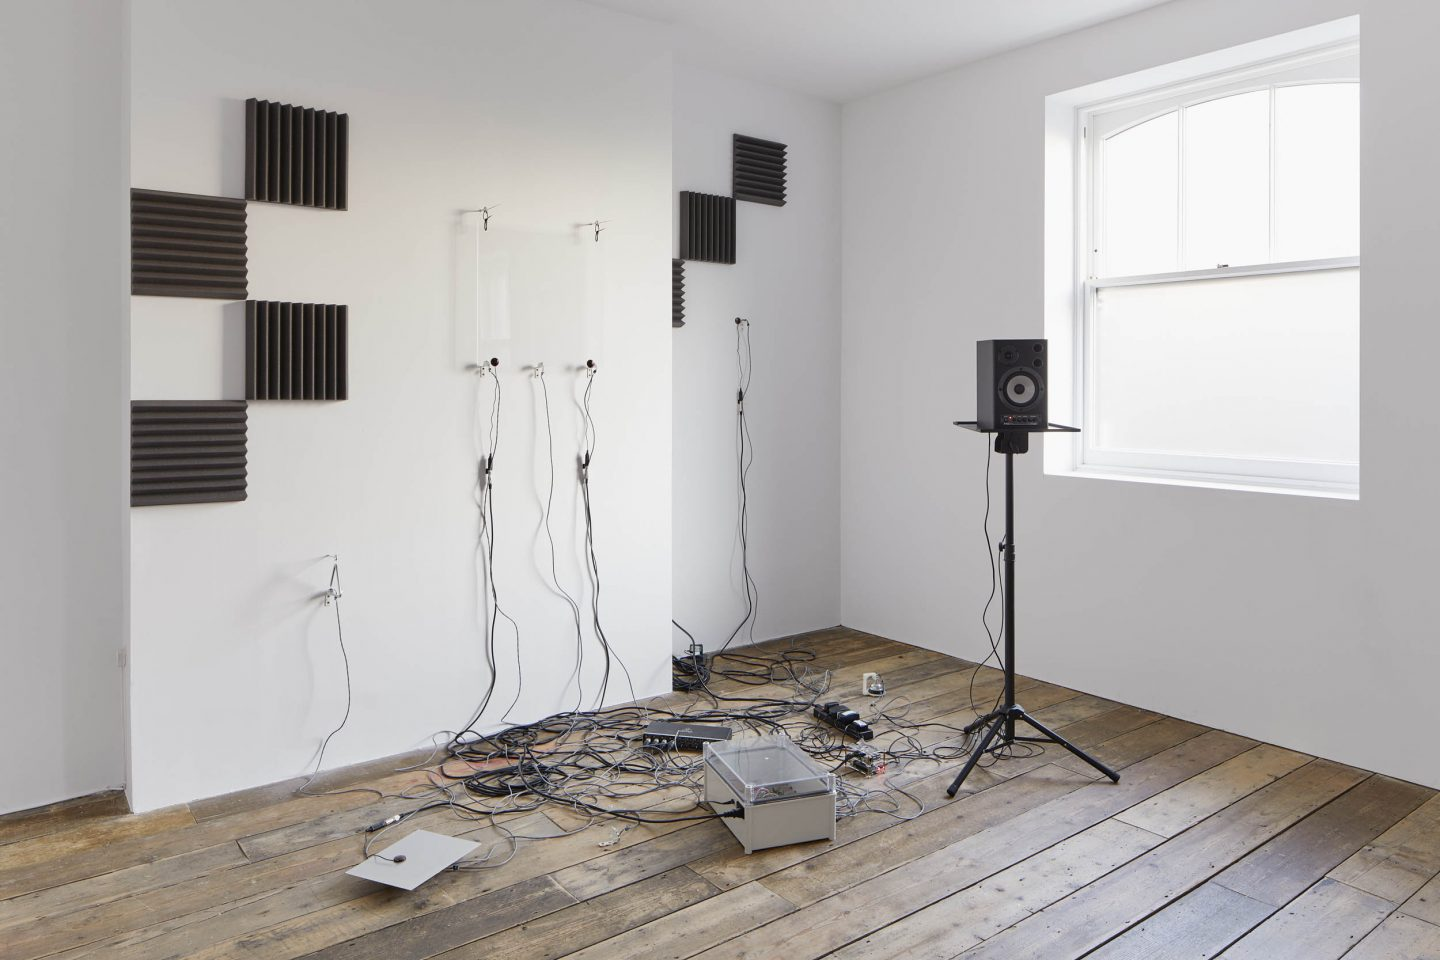 A tangle of wires on the floor linked to a free standing speaker and speakers wall mounted